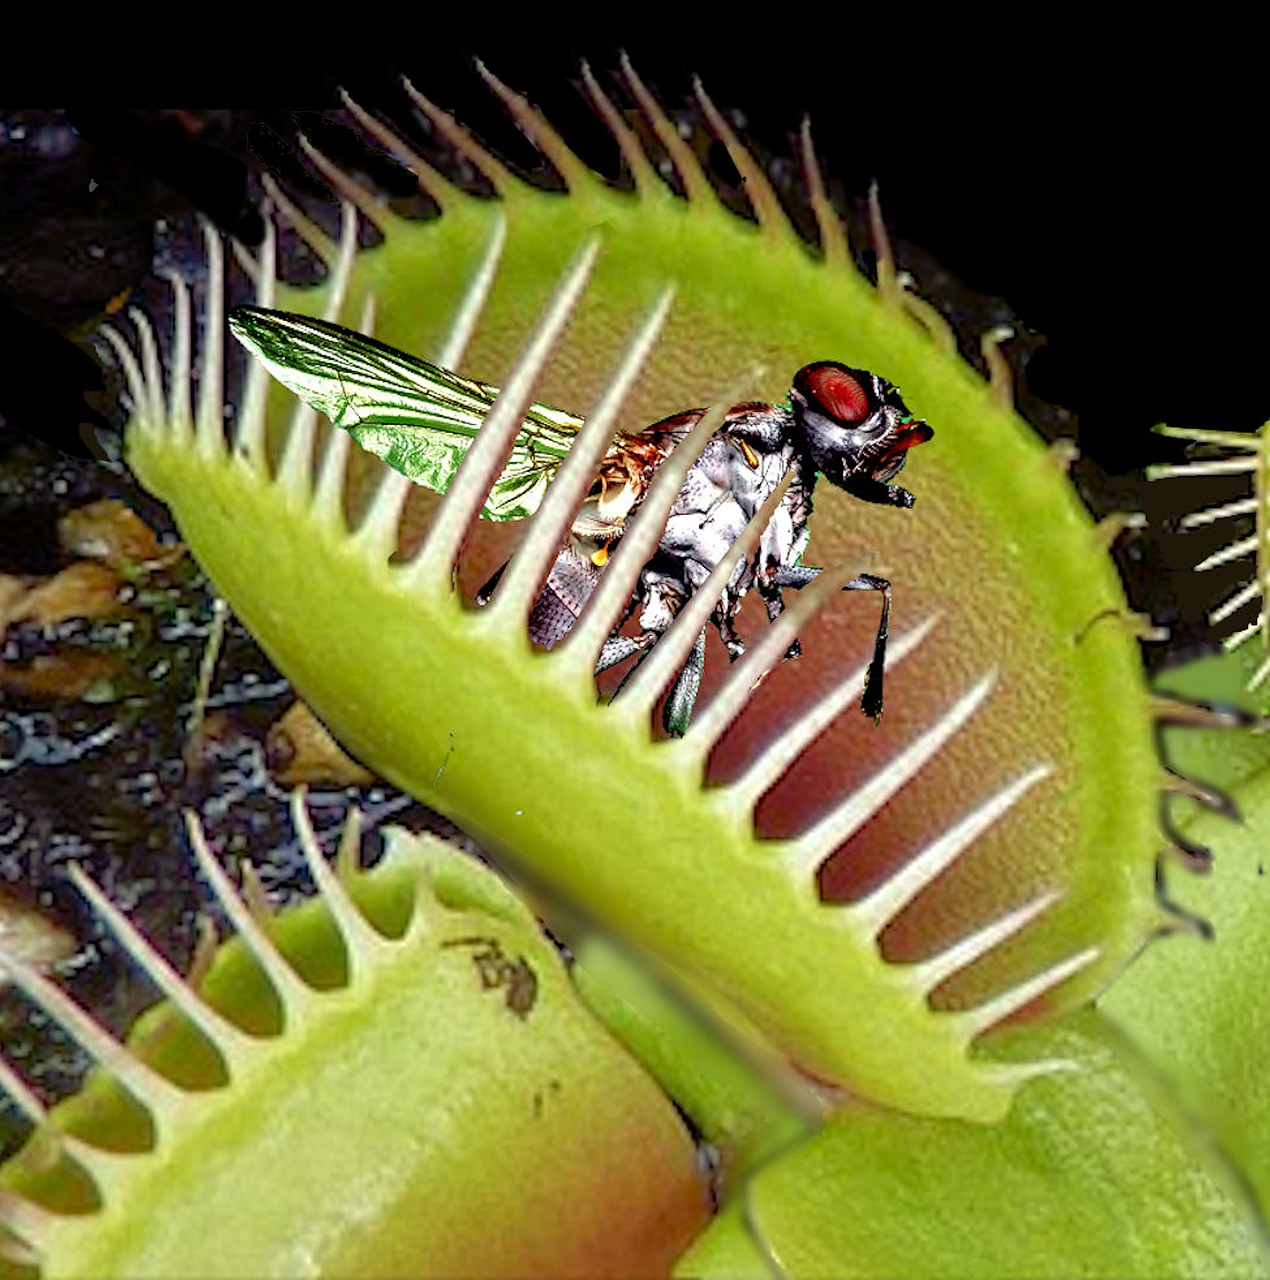 Venus flytraps close up on their prey and then slowly digest it.